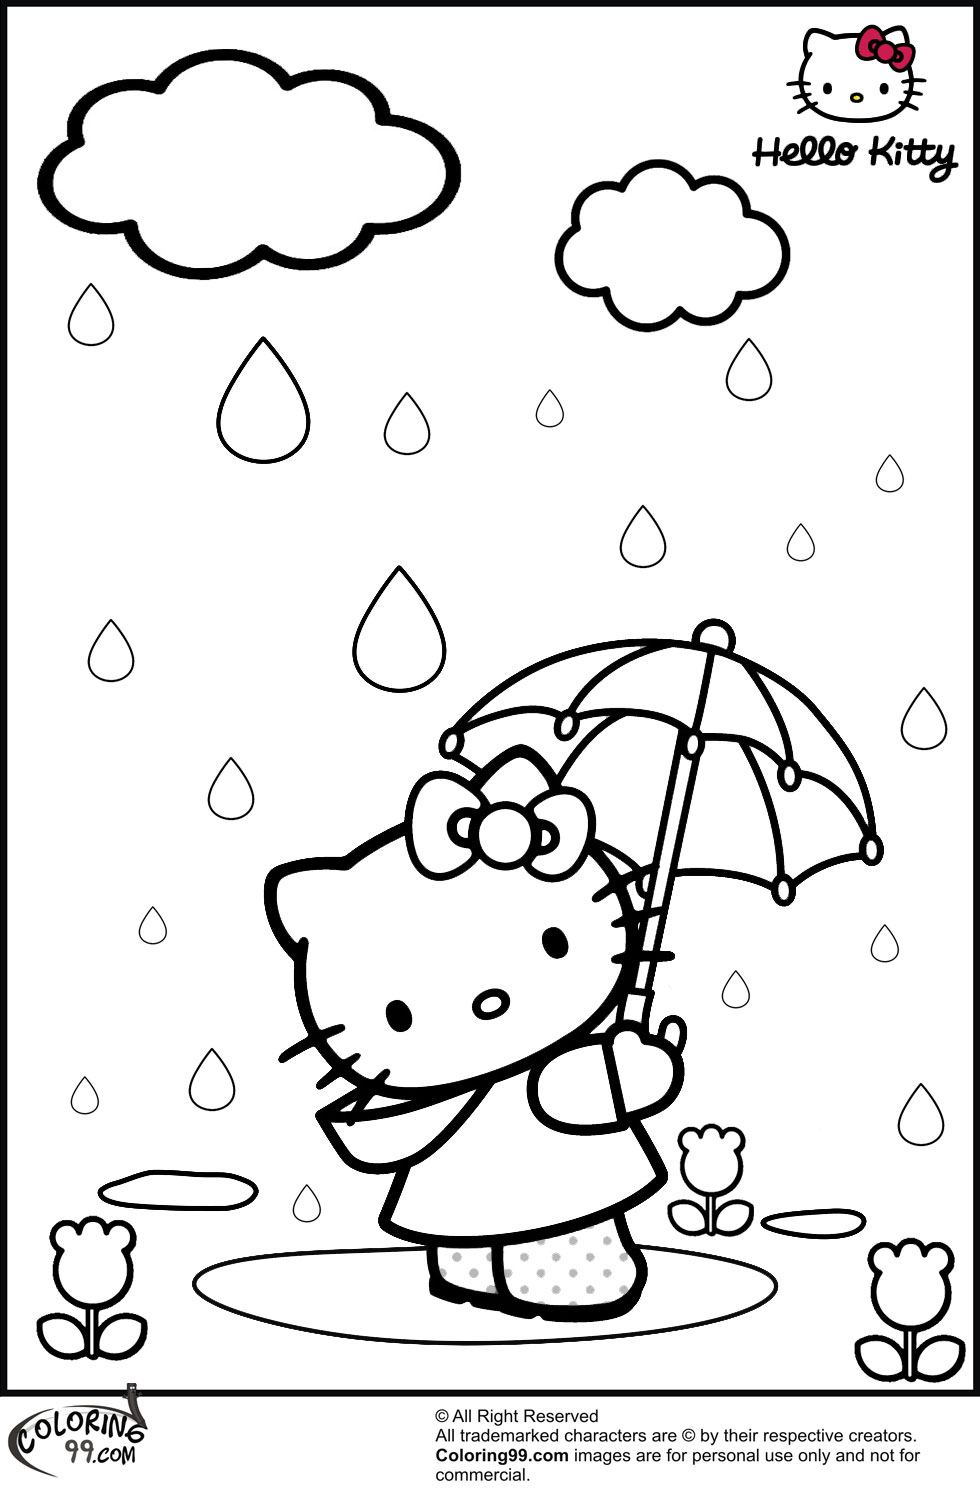 kitty coloring hello kitty coloring page 01 coloring page central coloring kitty